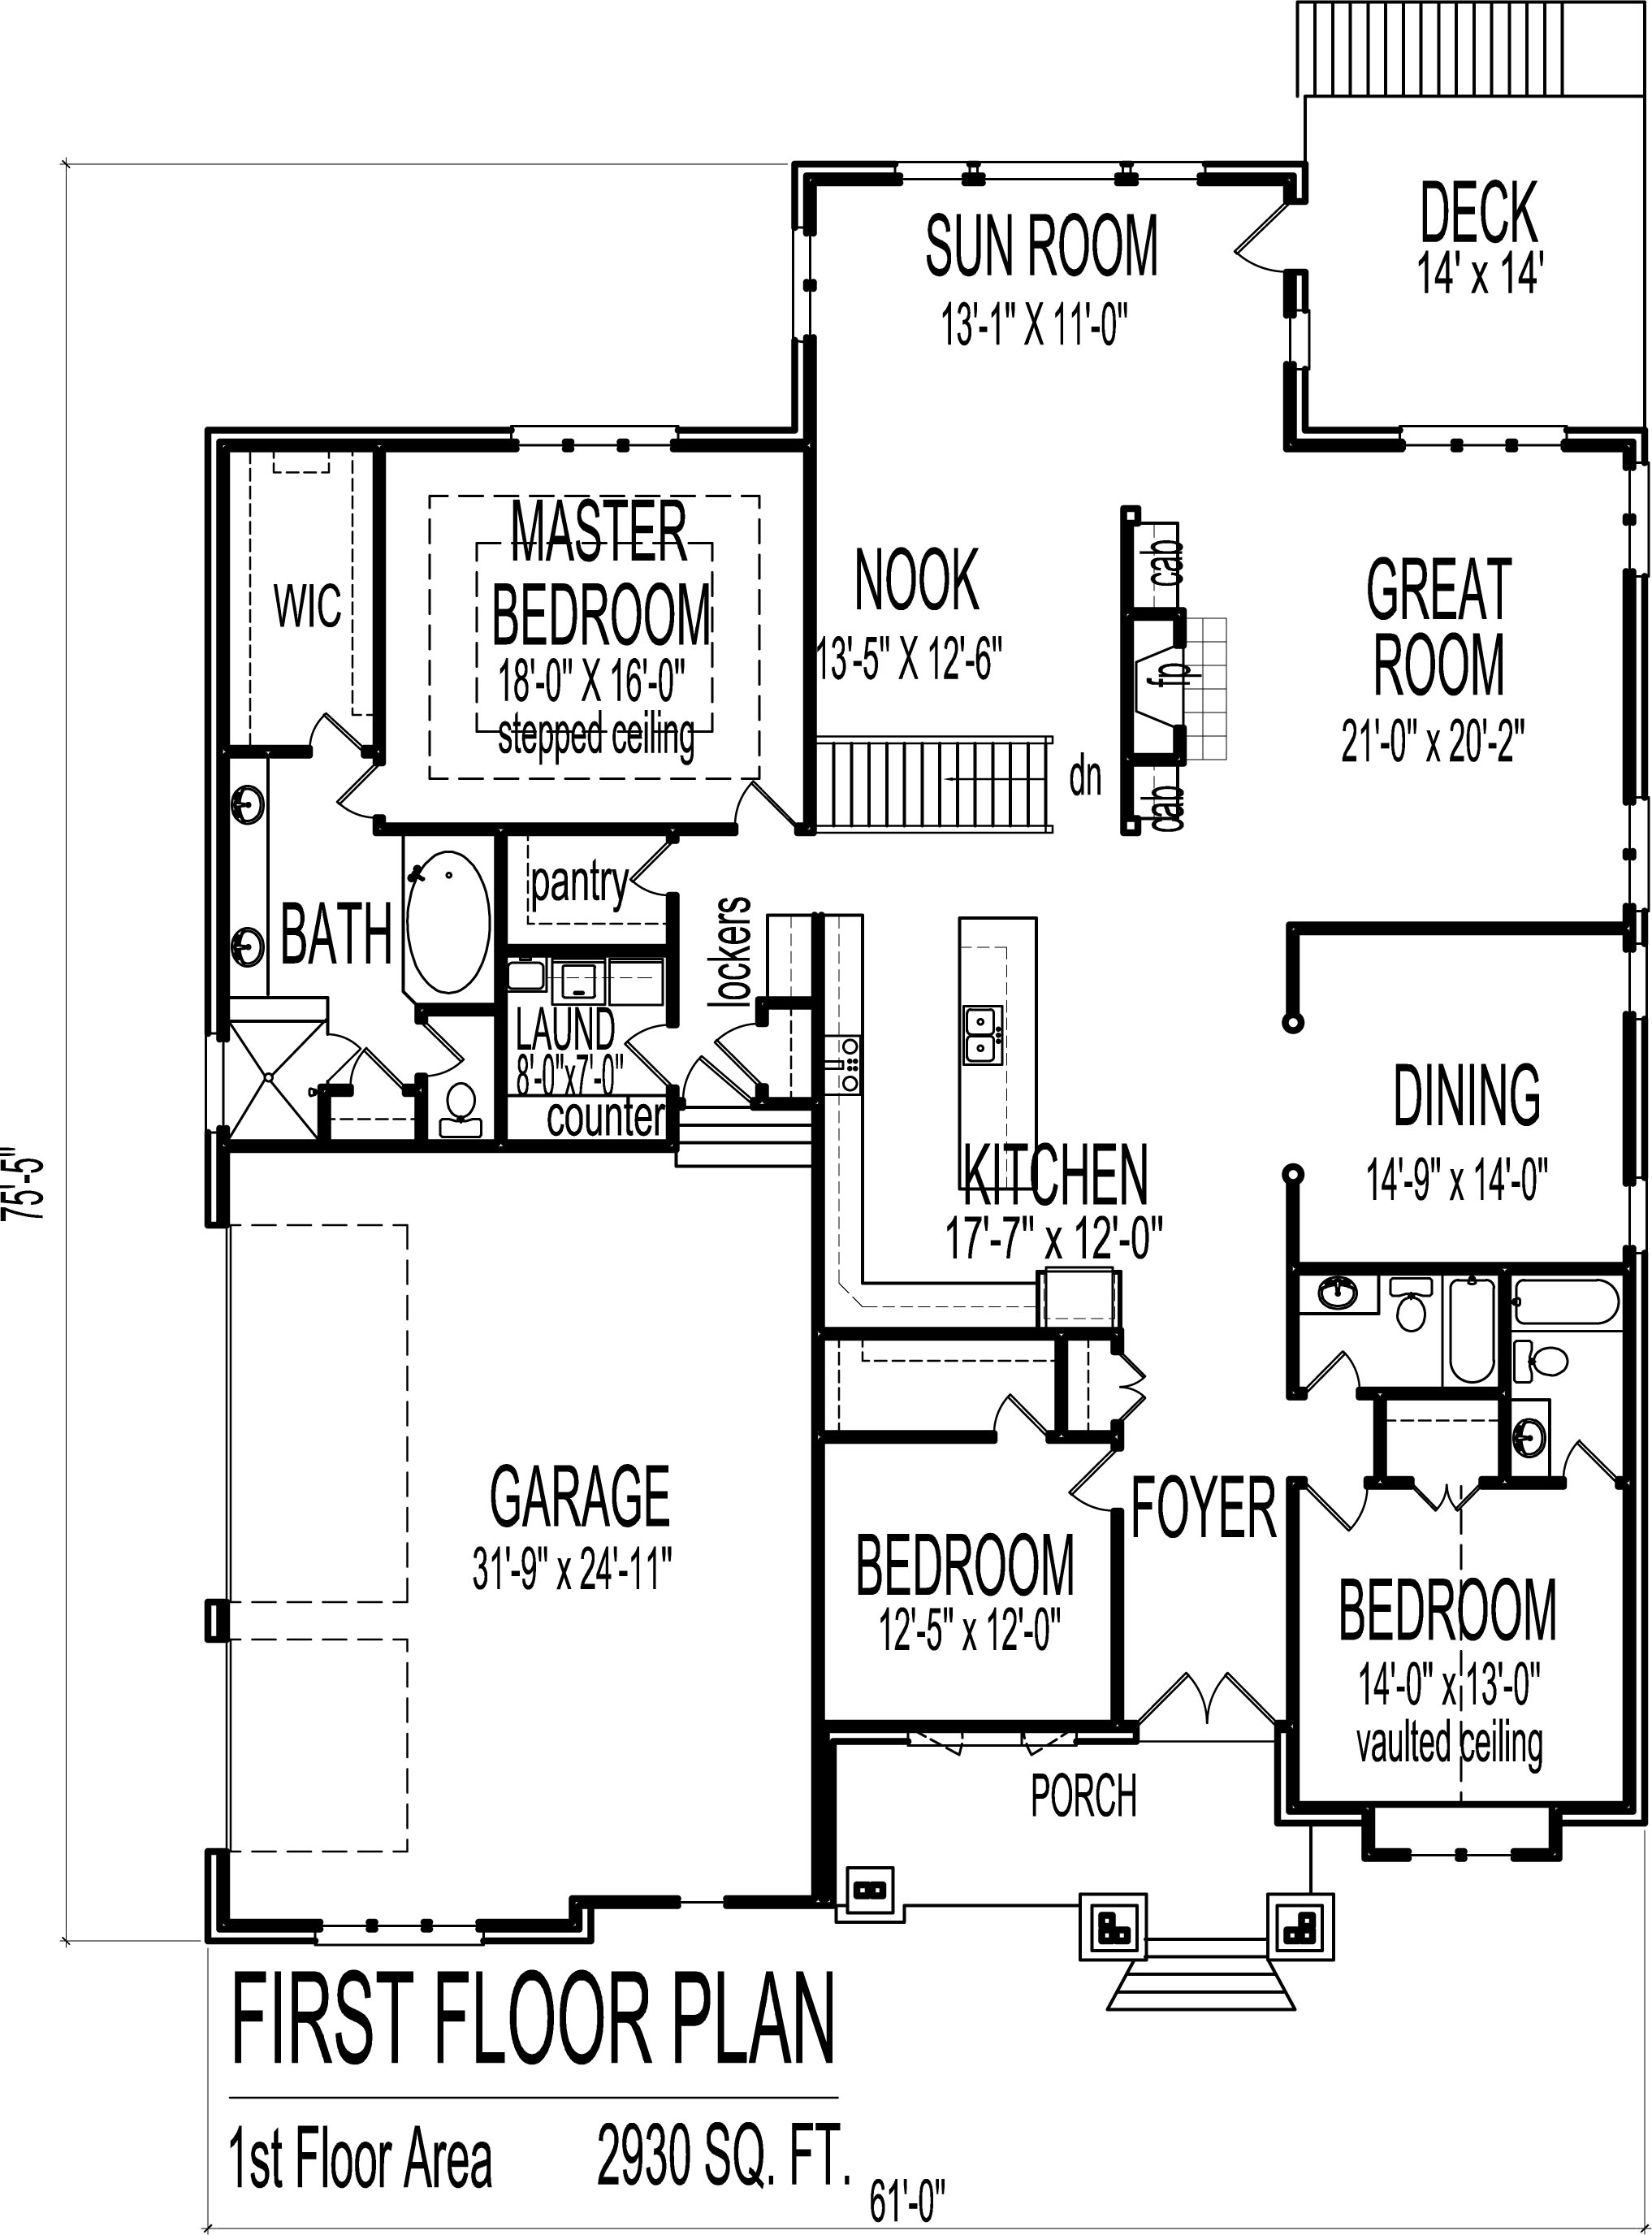 the best free craftsman drawing images download from 50 free Simple Electrical Wiring Diagrams 1280x853 craftsman house plans 2034x2751 interior craftsman style homes interior bathrooms deck laundry